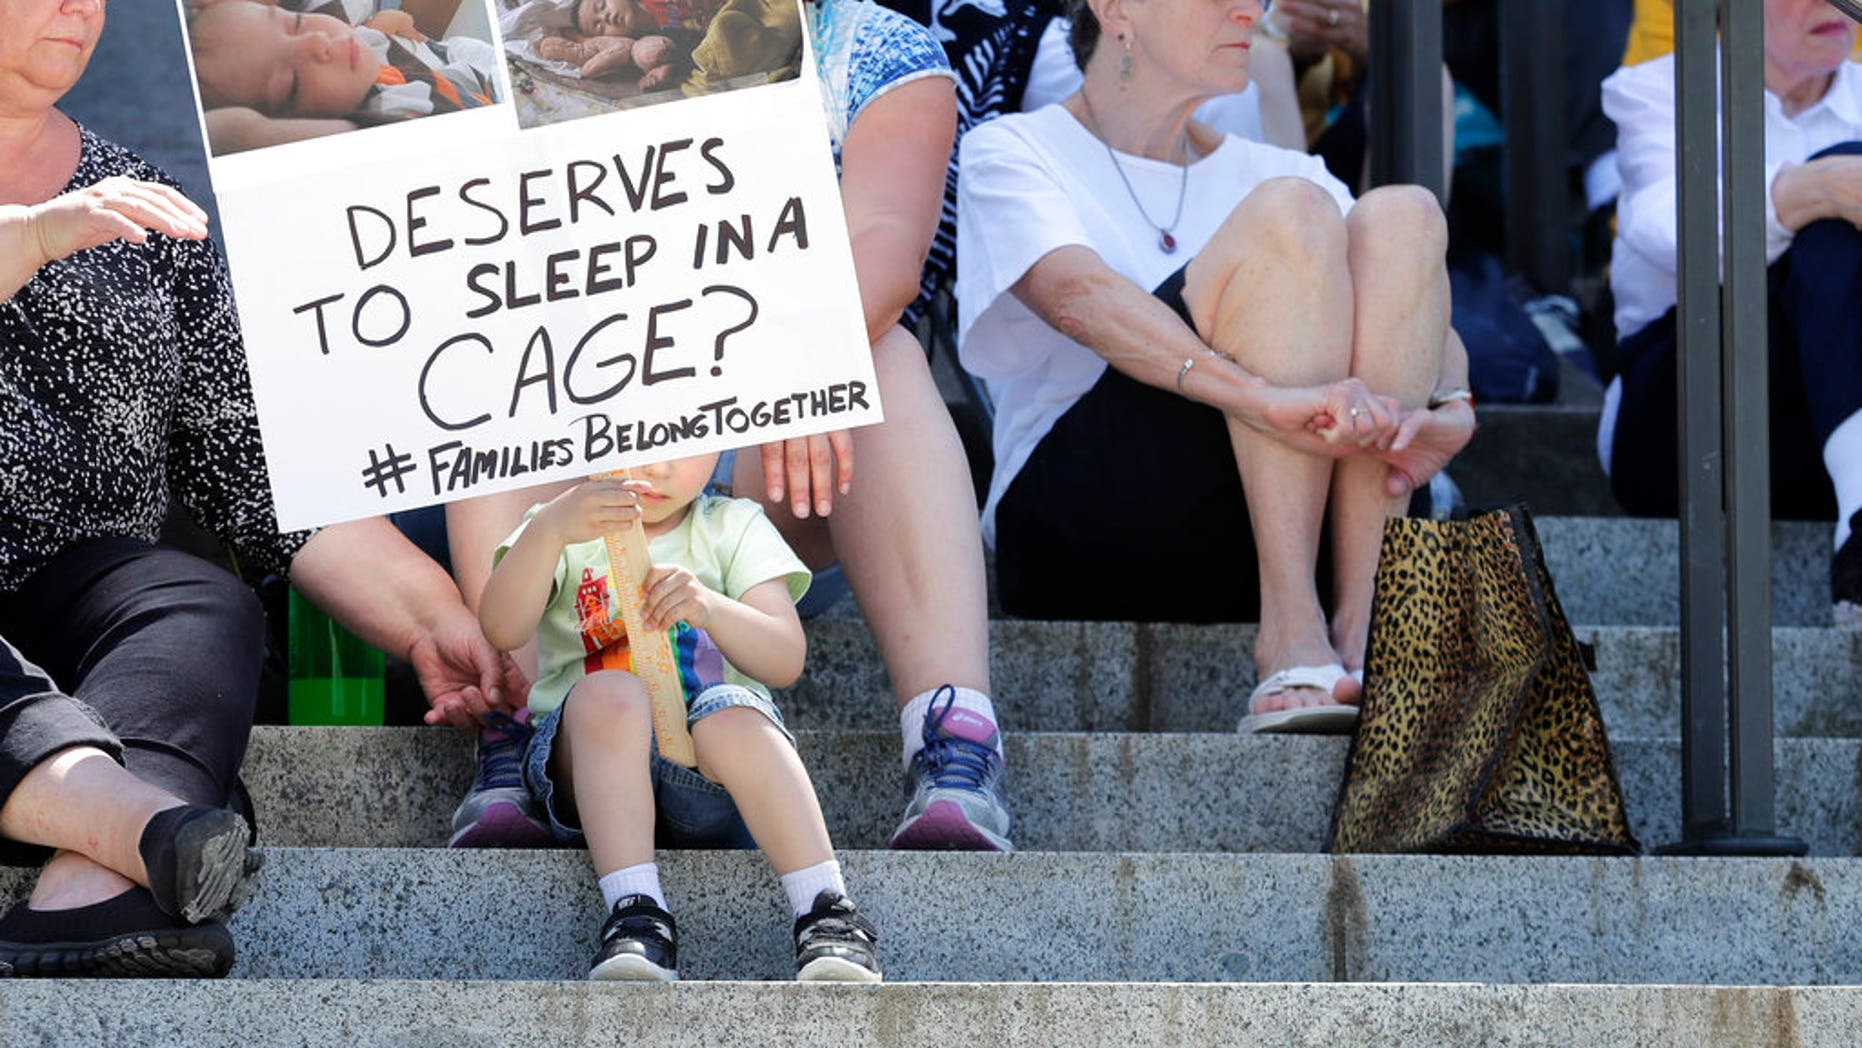 """Christopher Baker, 3, holds a sign that reads """"Which baby deserves to sleep in a cage?"""" as he attends a Poor People's Campaign rally with his mother, Katie Baker, behind sign, Monday, June 18, 2018, at the Capitol in Olympia, Wash. U.S. President Donald Trump defended his administration's border-protection policies Monday in the face of rising national outrage over the forced separation of migrant children from their parents. (AP Photo/Ted S. Warren)"""